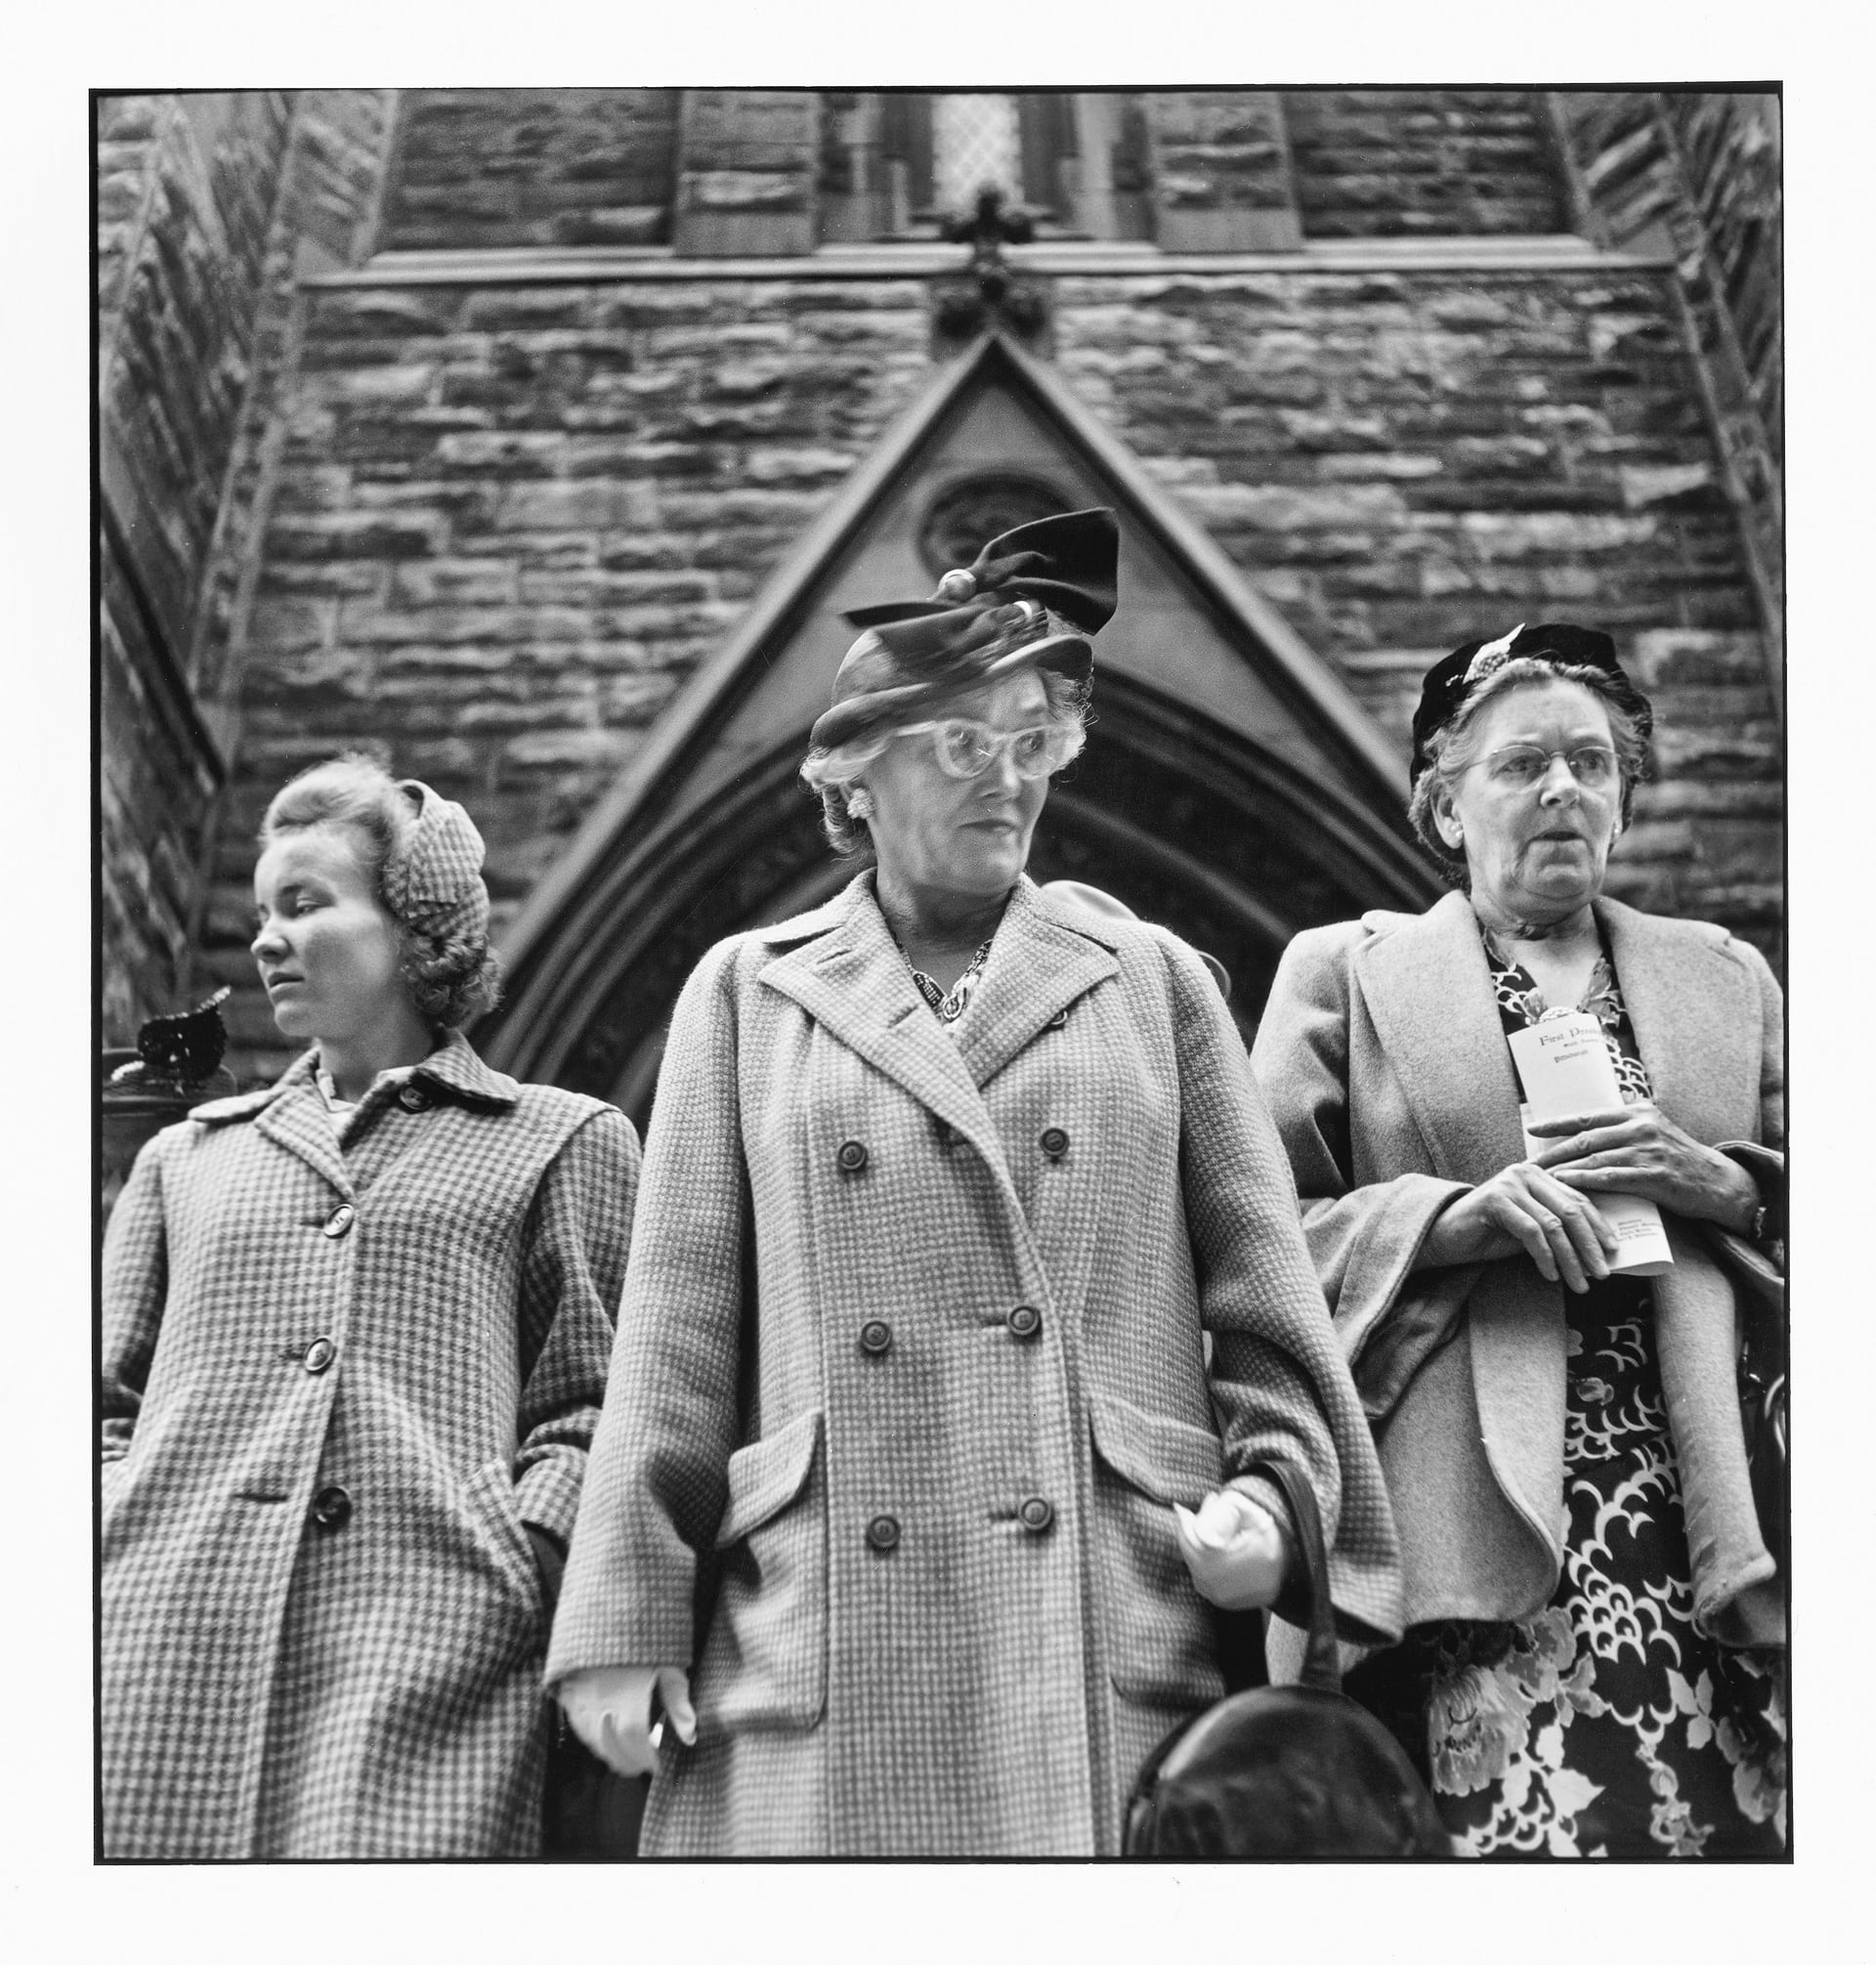 Elliott Erwitt's lost shots of Pittsburgh